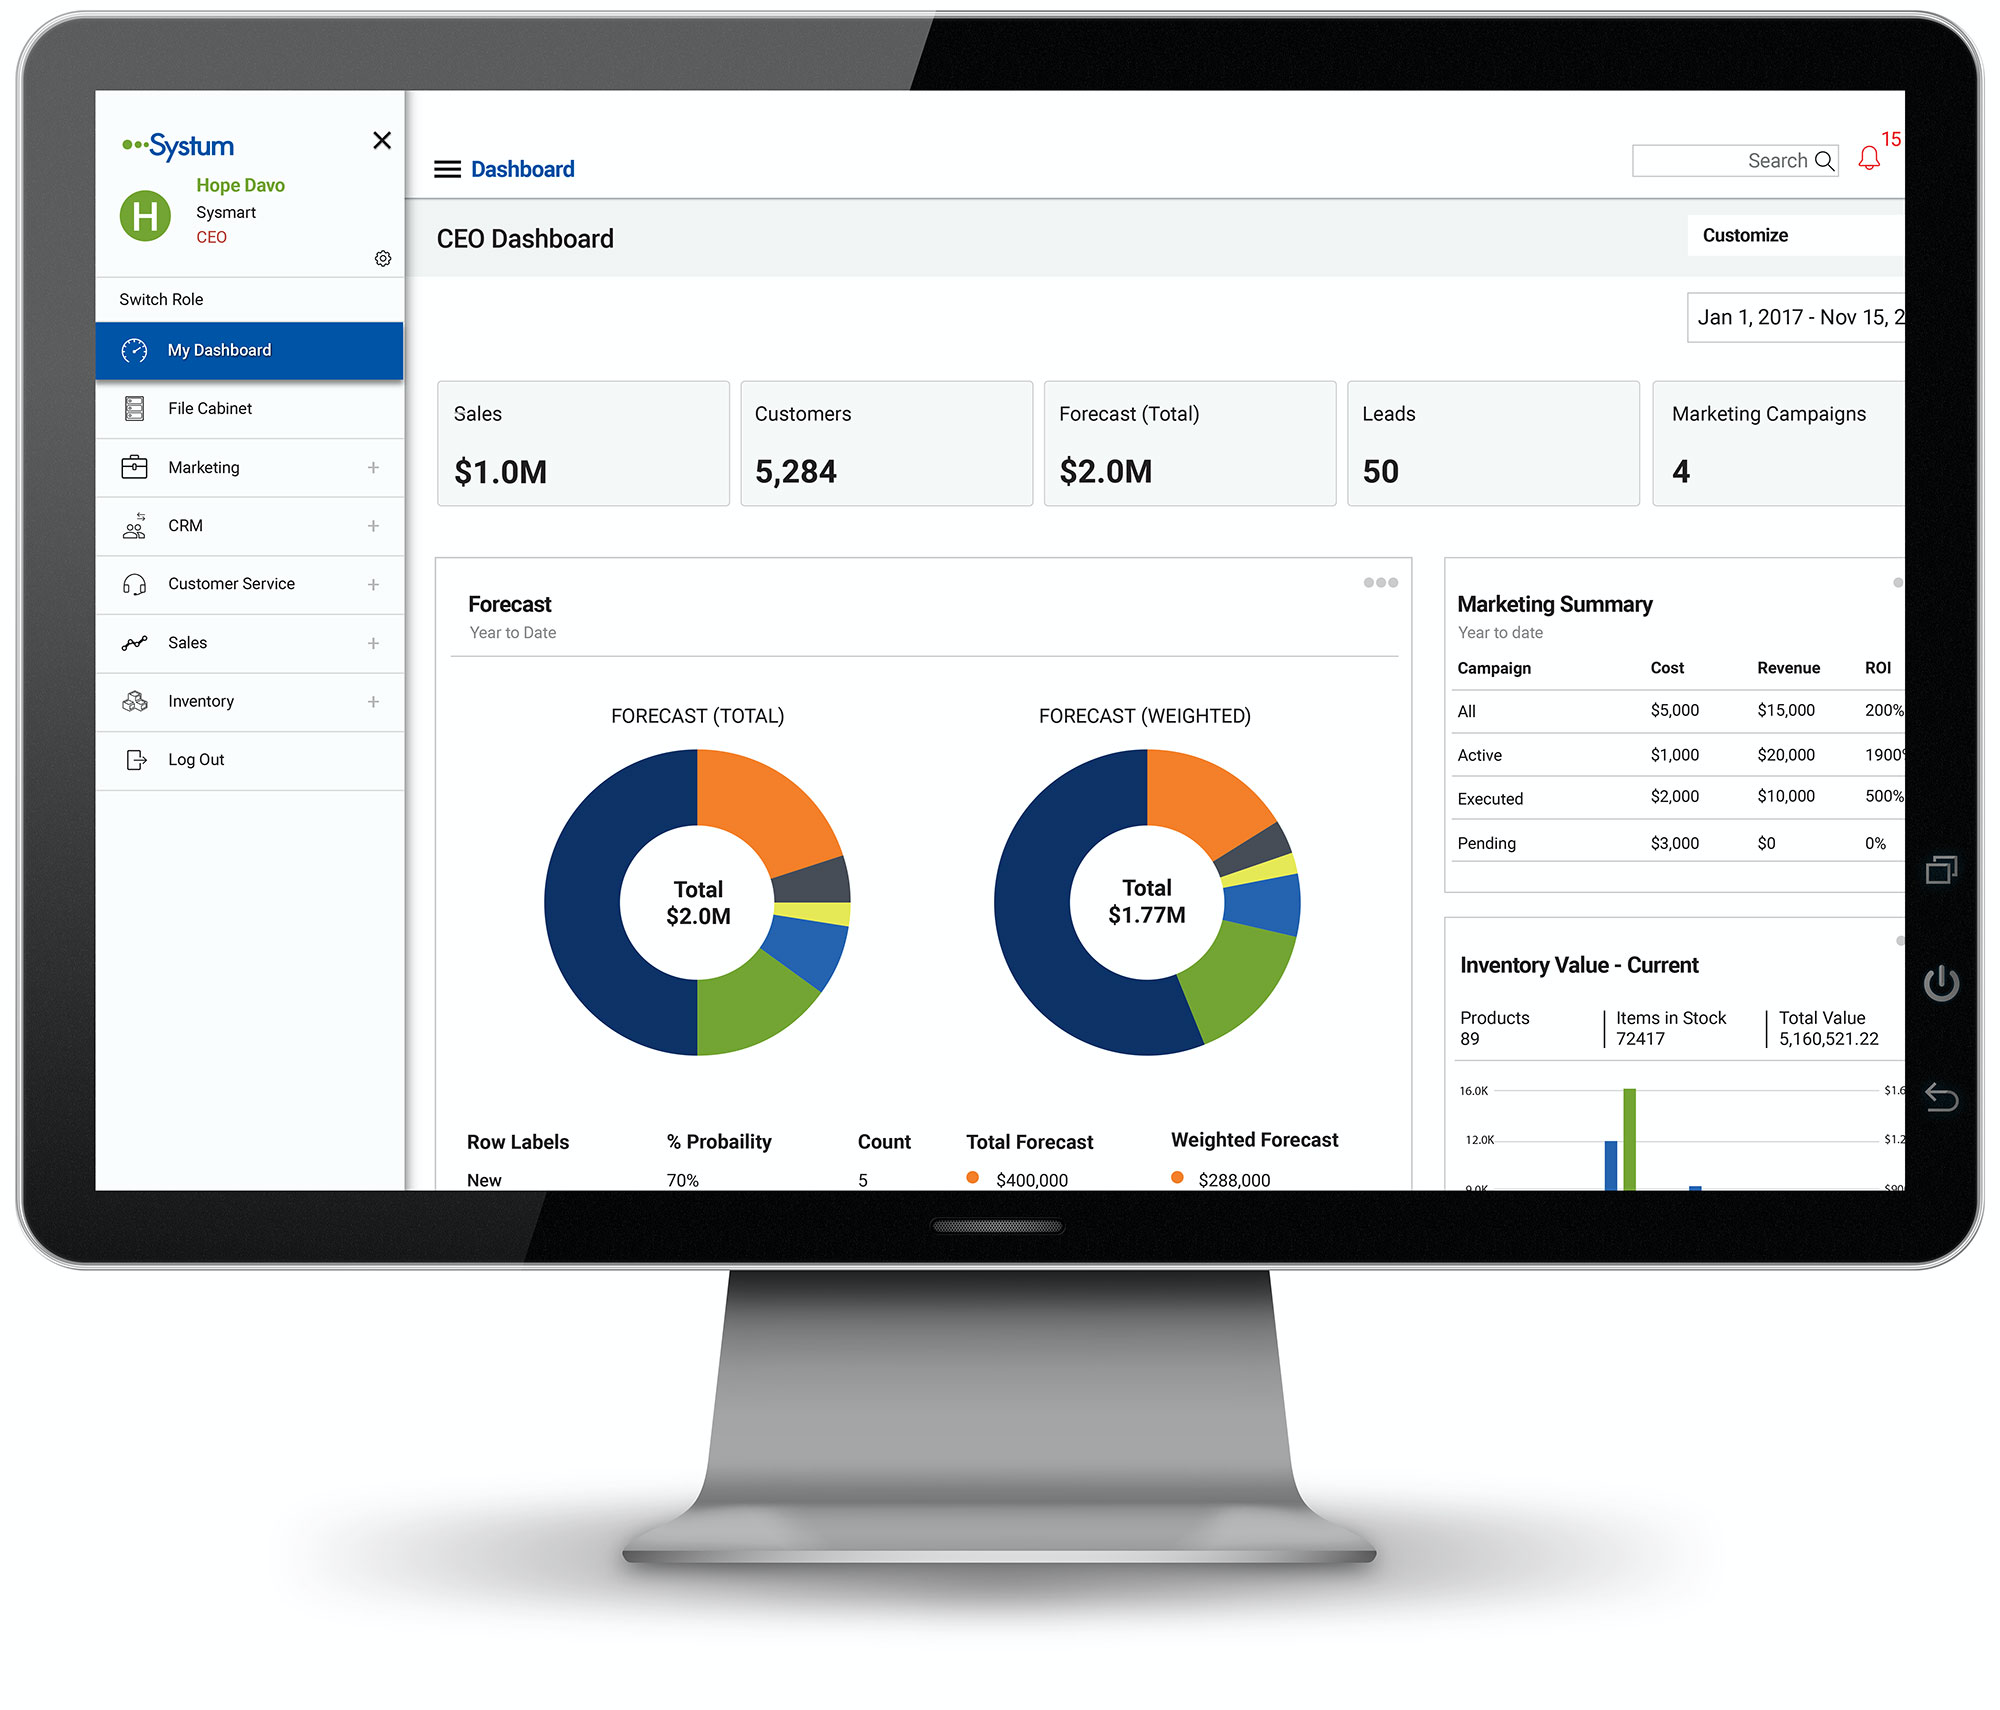 The CEO dashboard provides a custom overview of the business